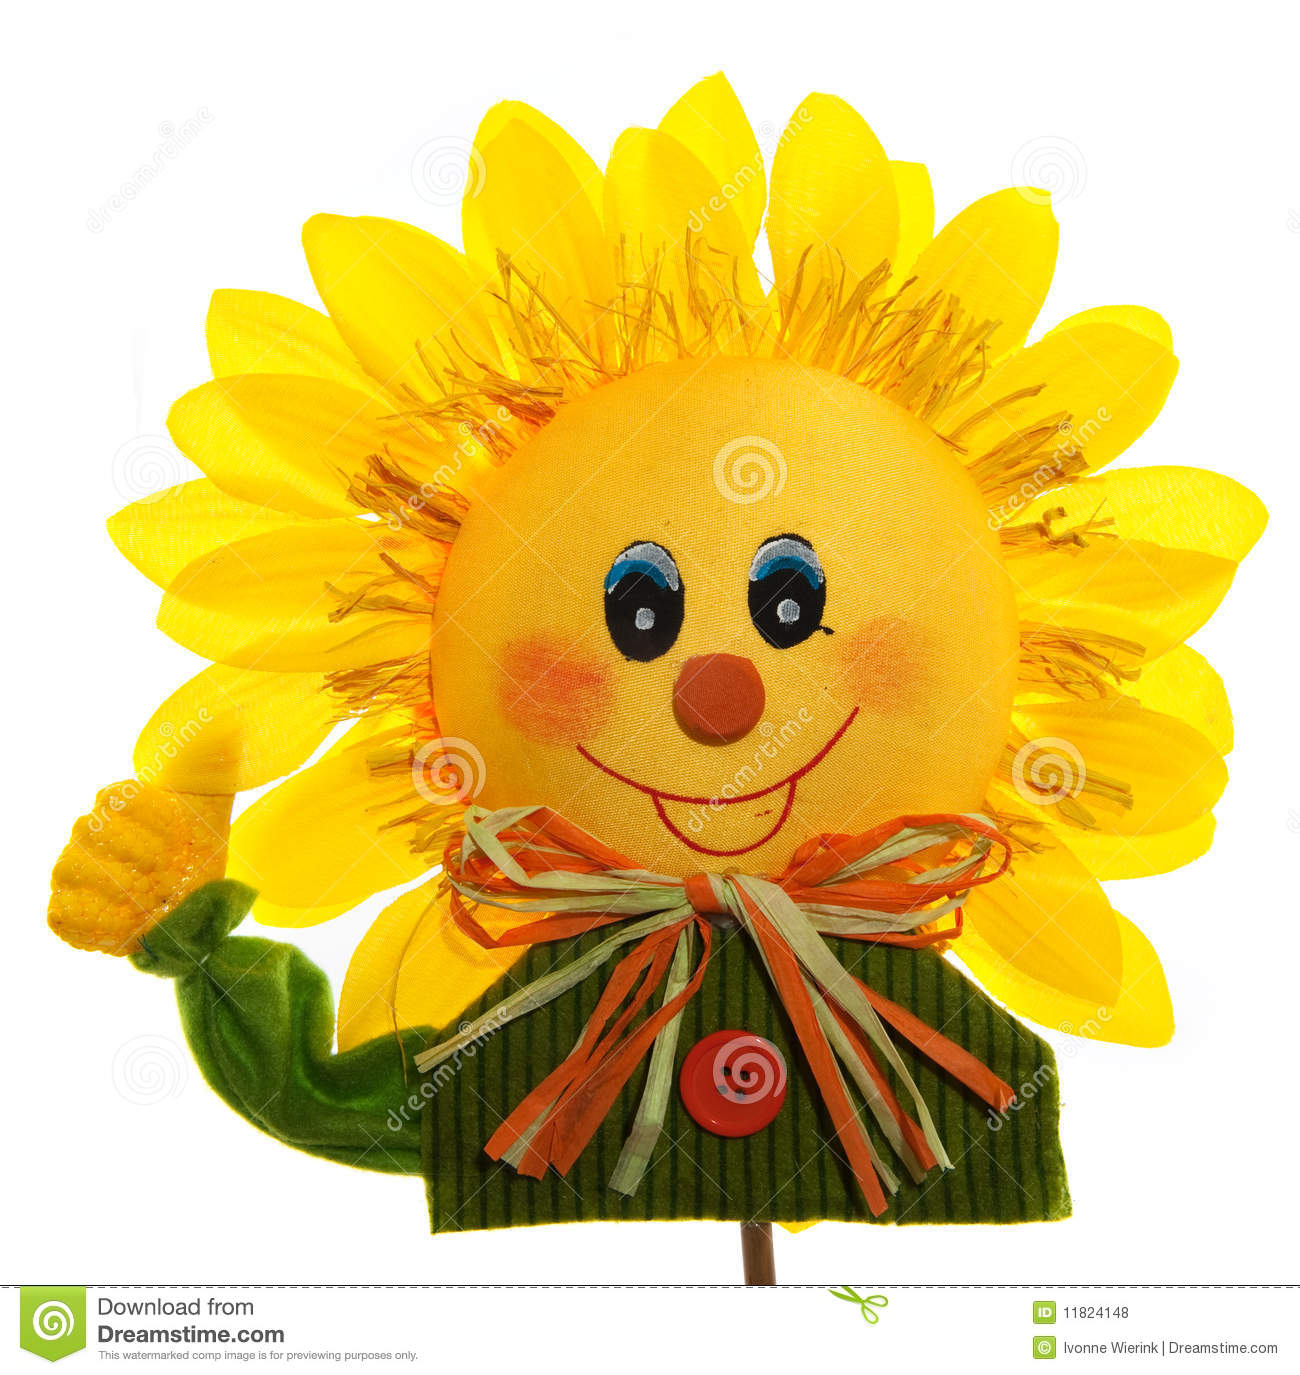 Smiling Sunflower Royalty Free Stock Photos - Image: 11824148